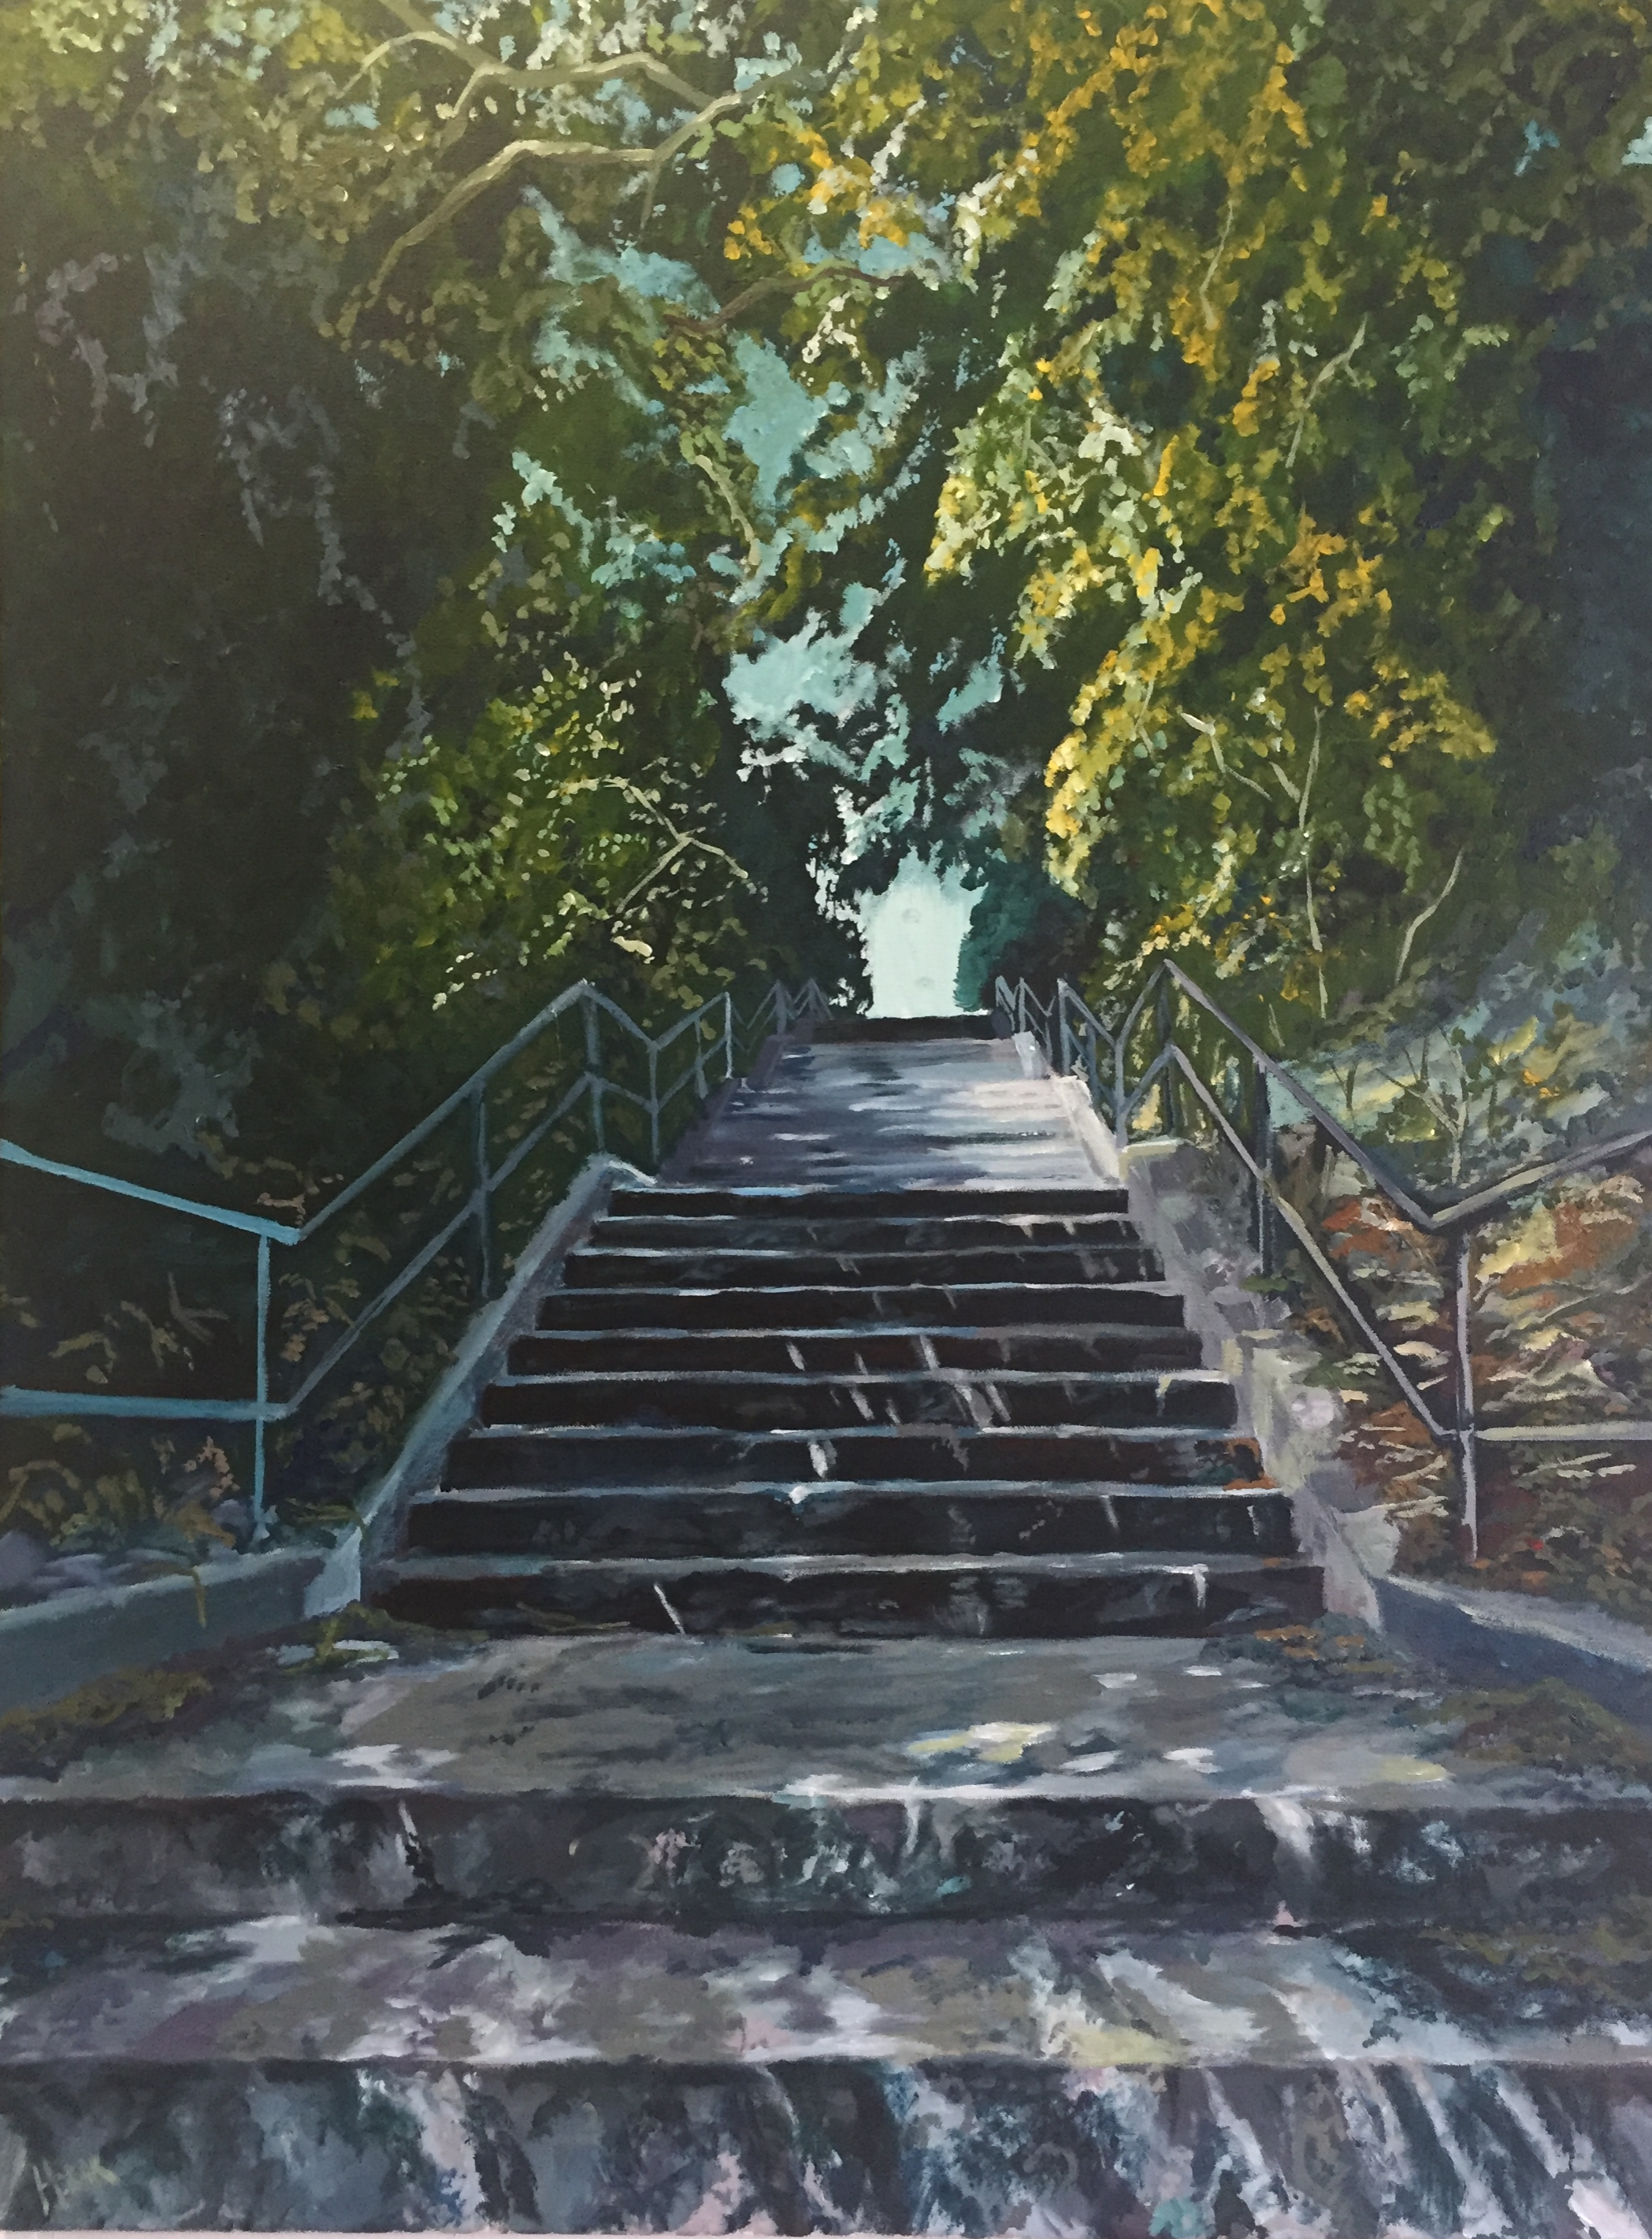 Staircase to Regal Road, Acrylic on Canvass.  3'x5' - SOLD